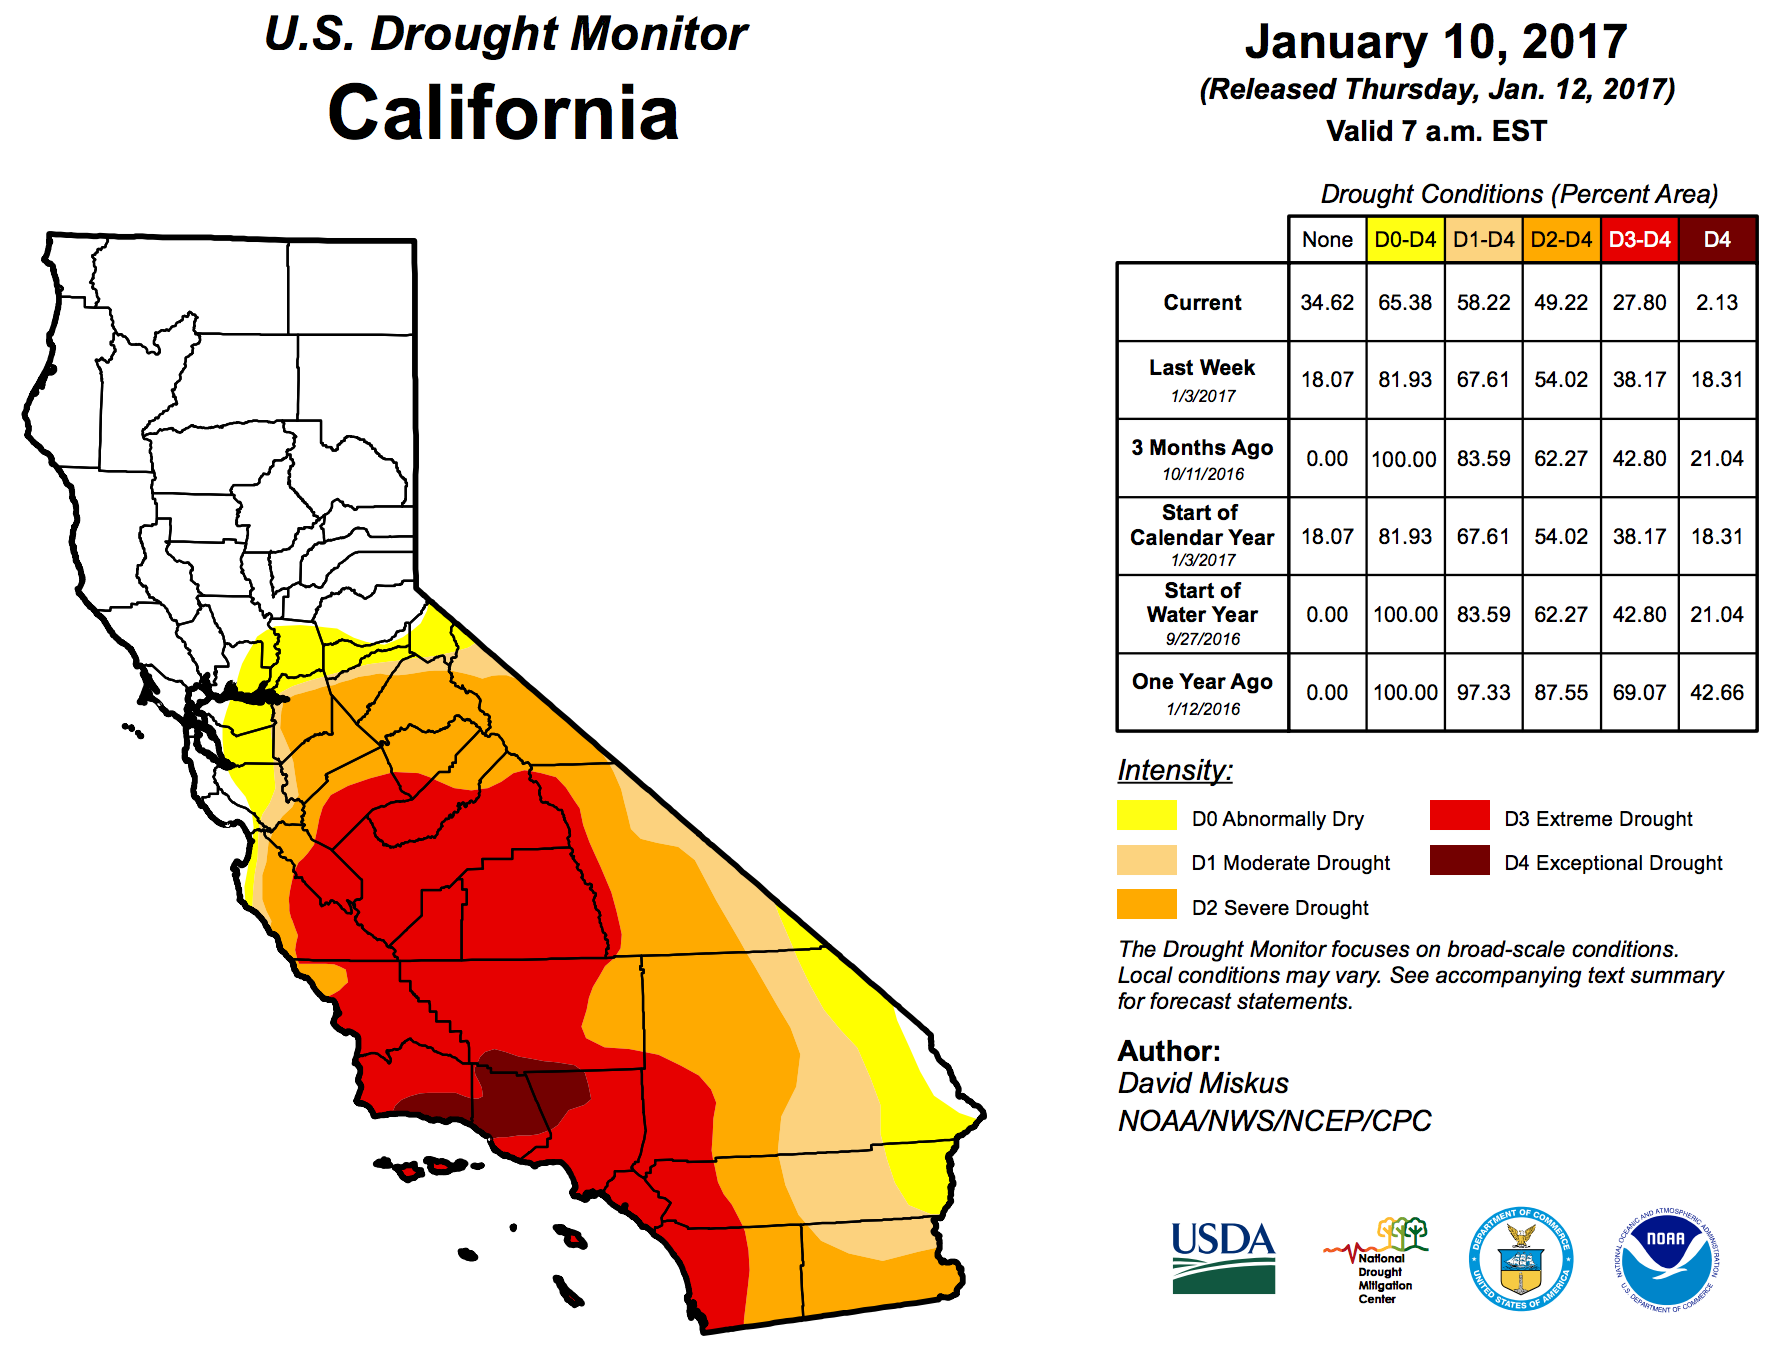 Climate Signals | Map: US Drought Monitor California, January 10, 2017